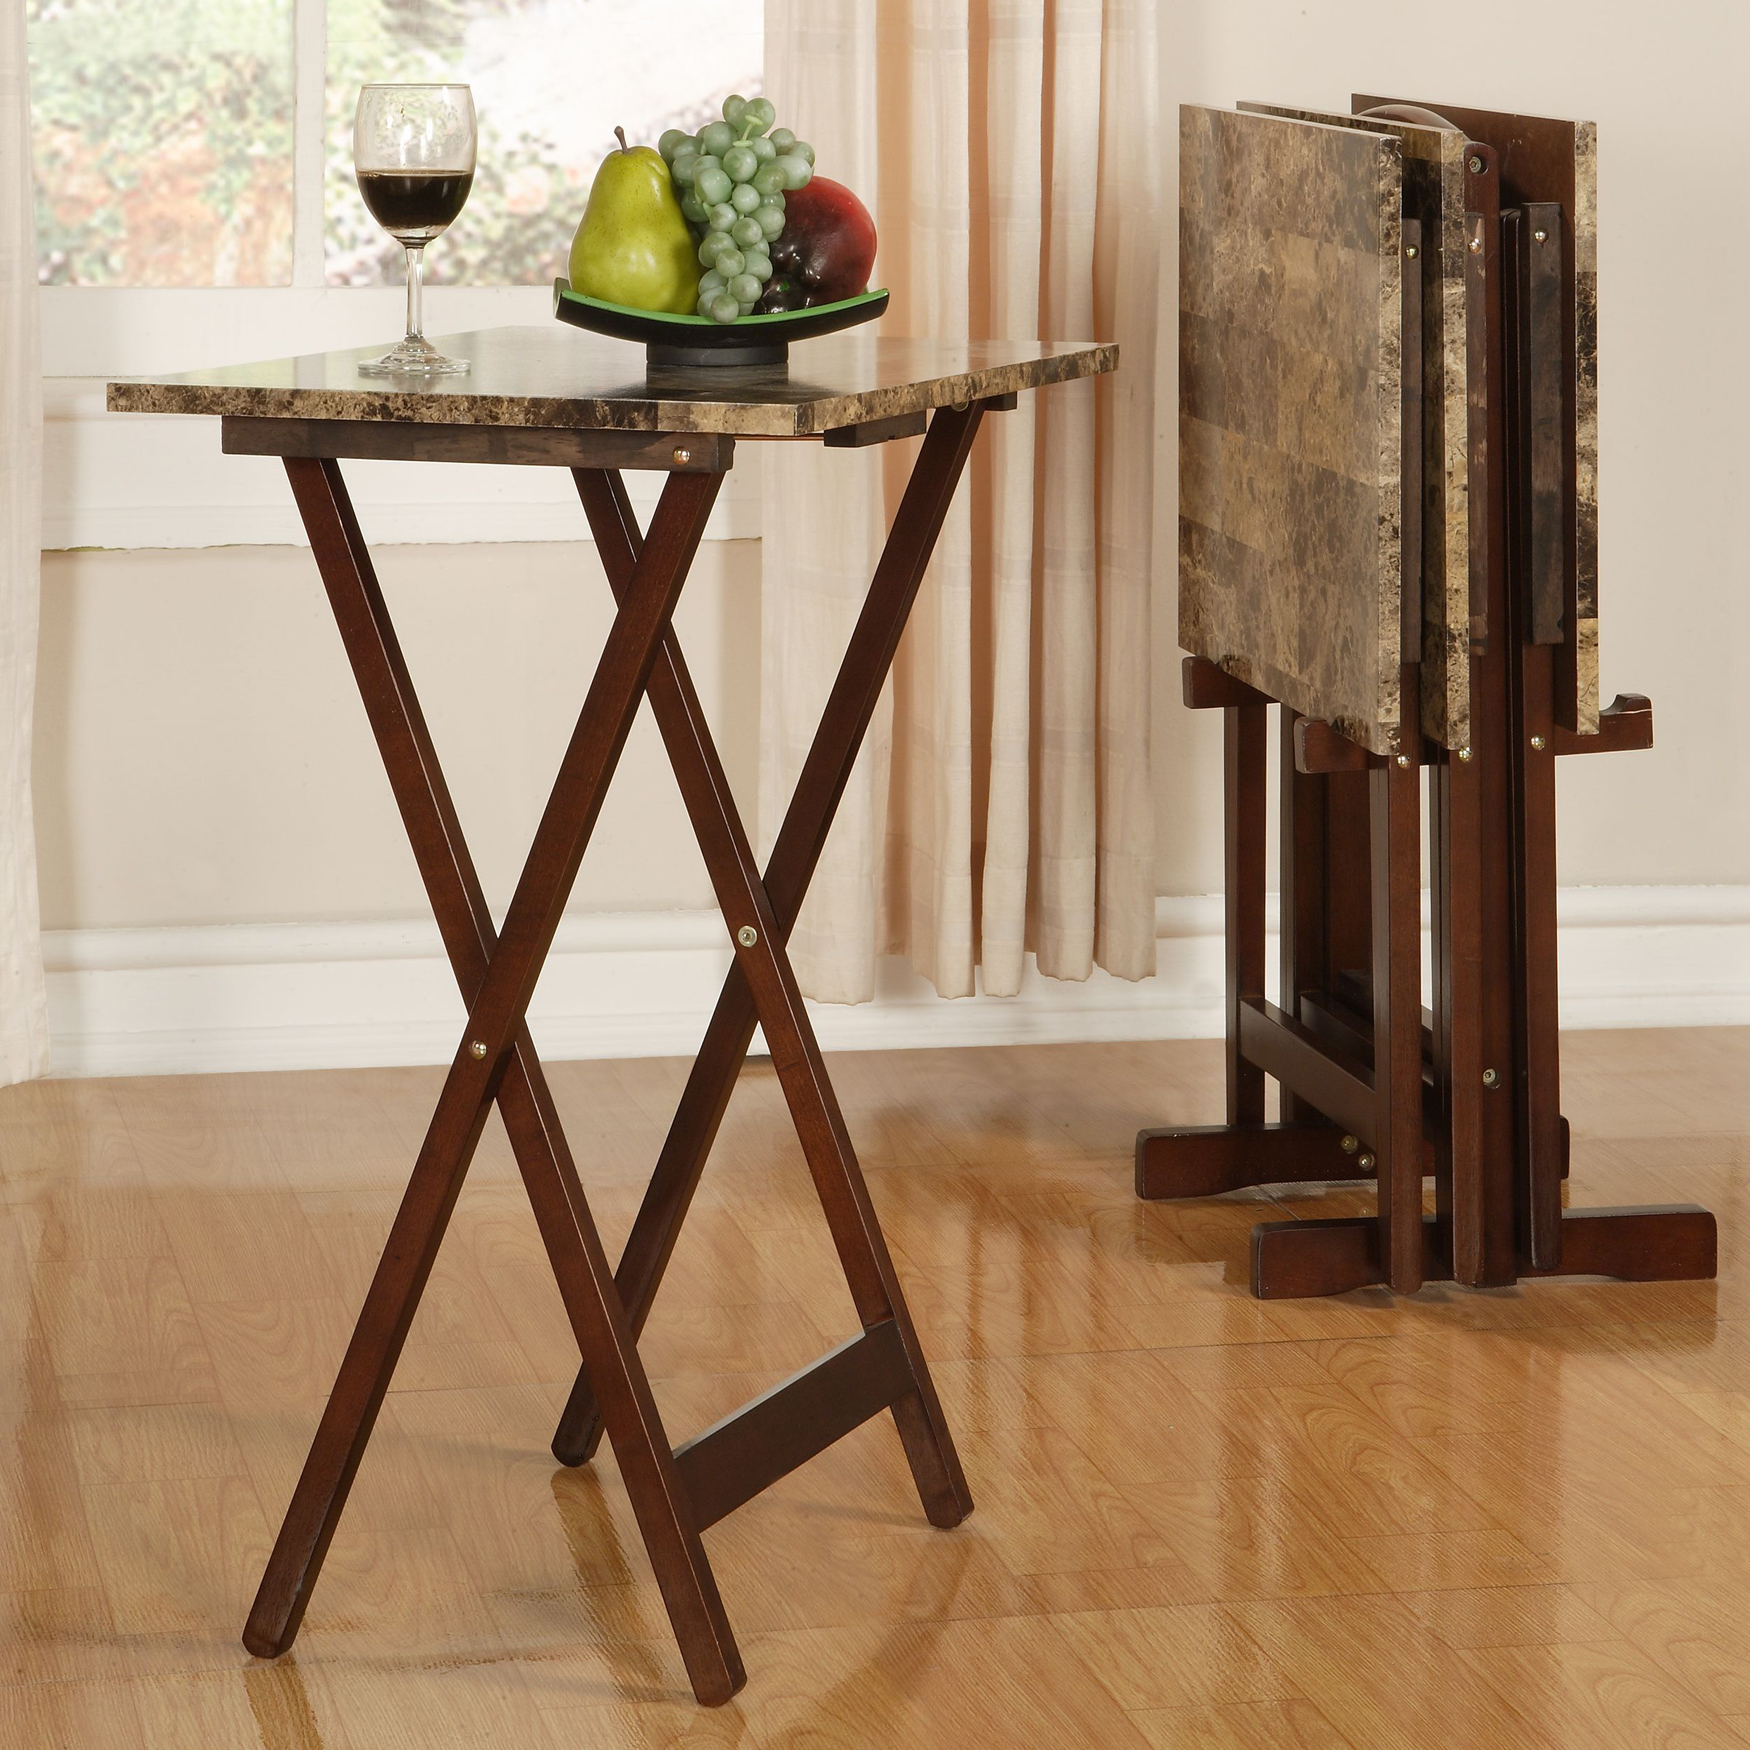 Faux Marble Tray Table 5-Pc. Set, MARBLE BROWN